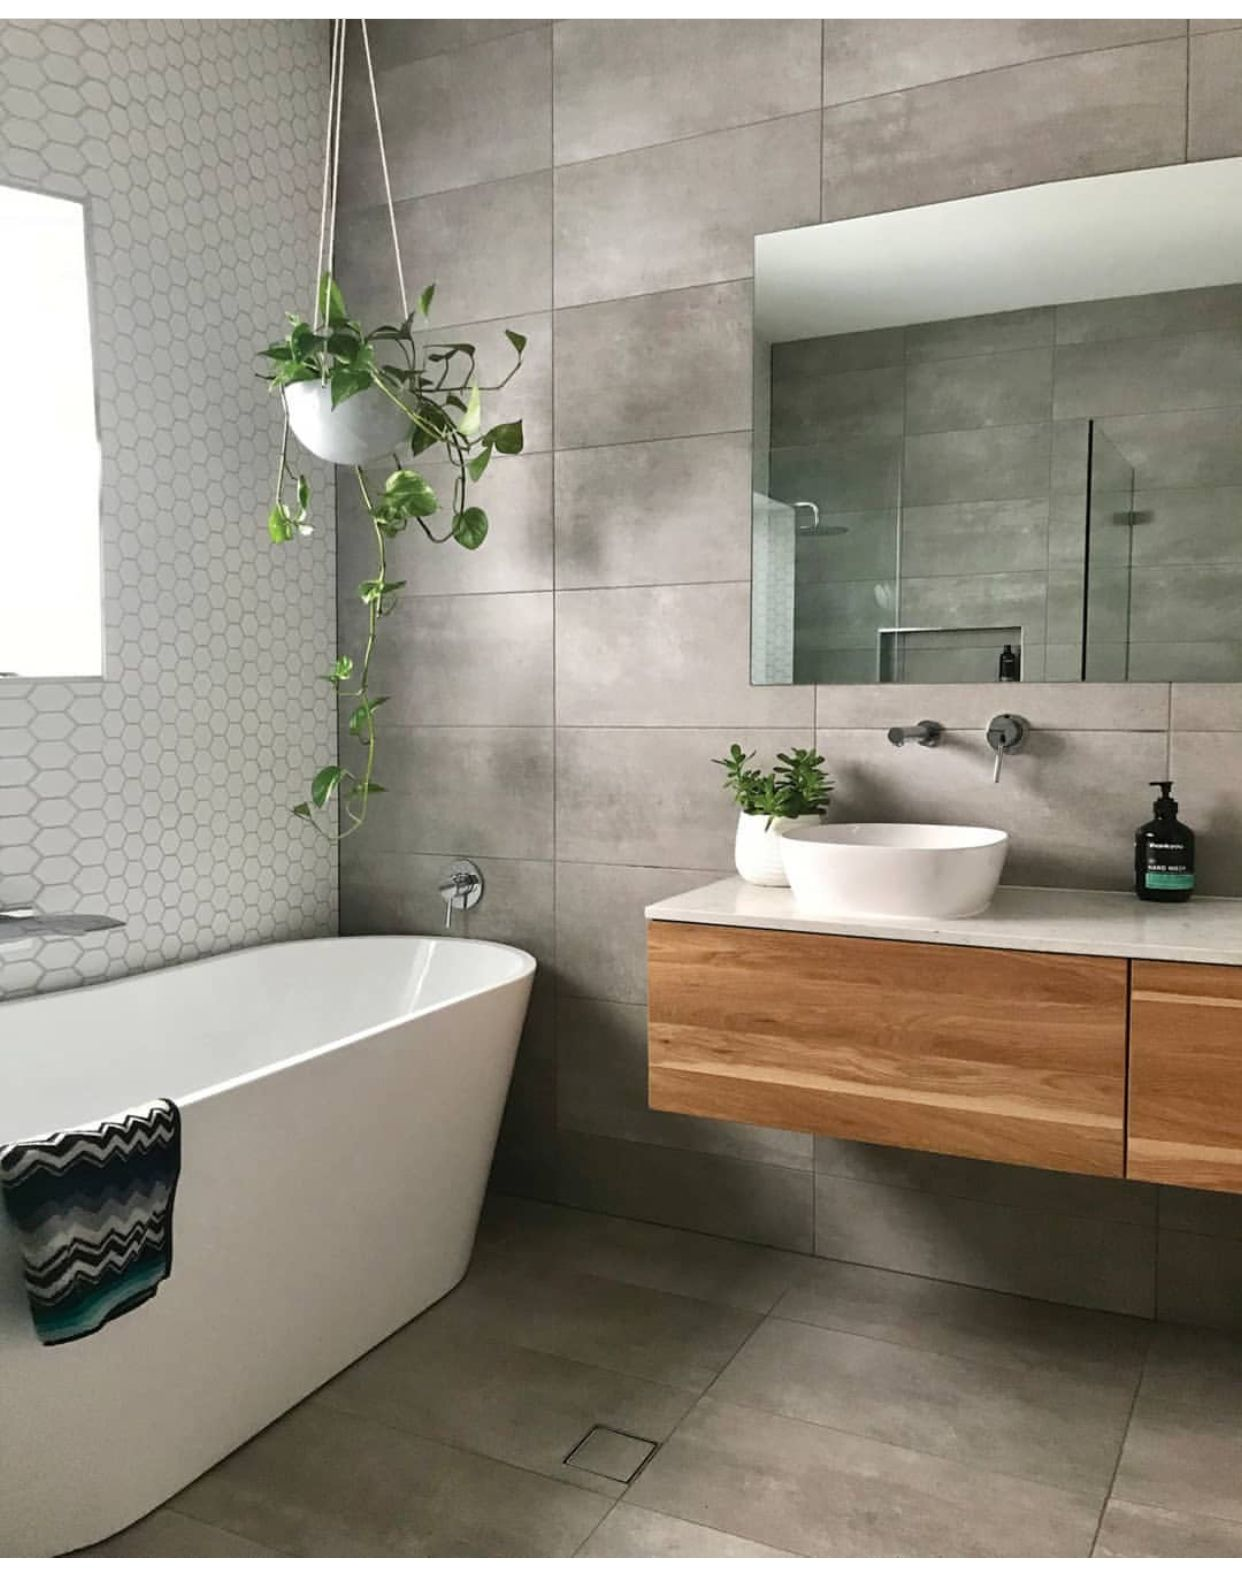 Pin by Danielle Stone on Home Inspo | Bathroom renovation ...